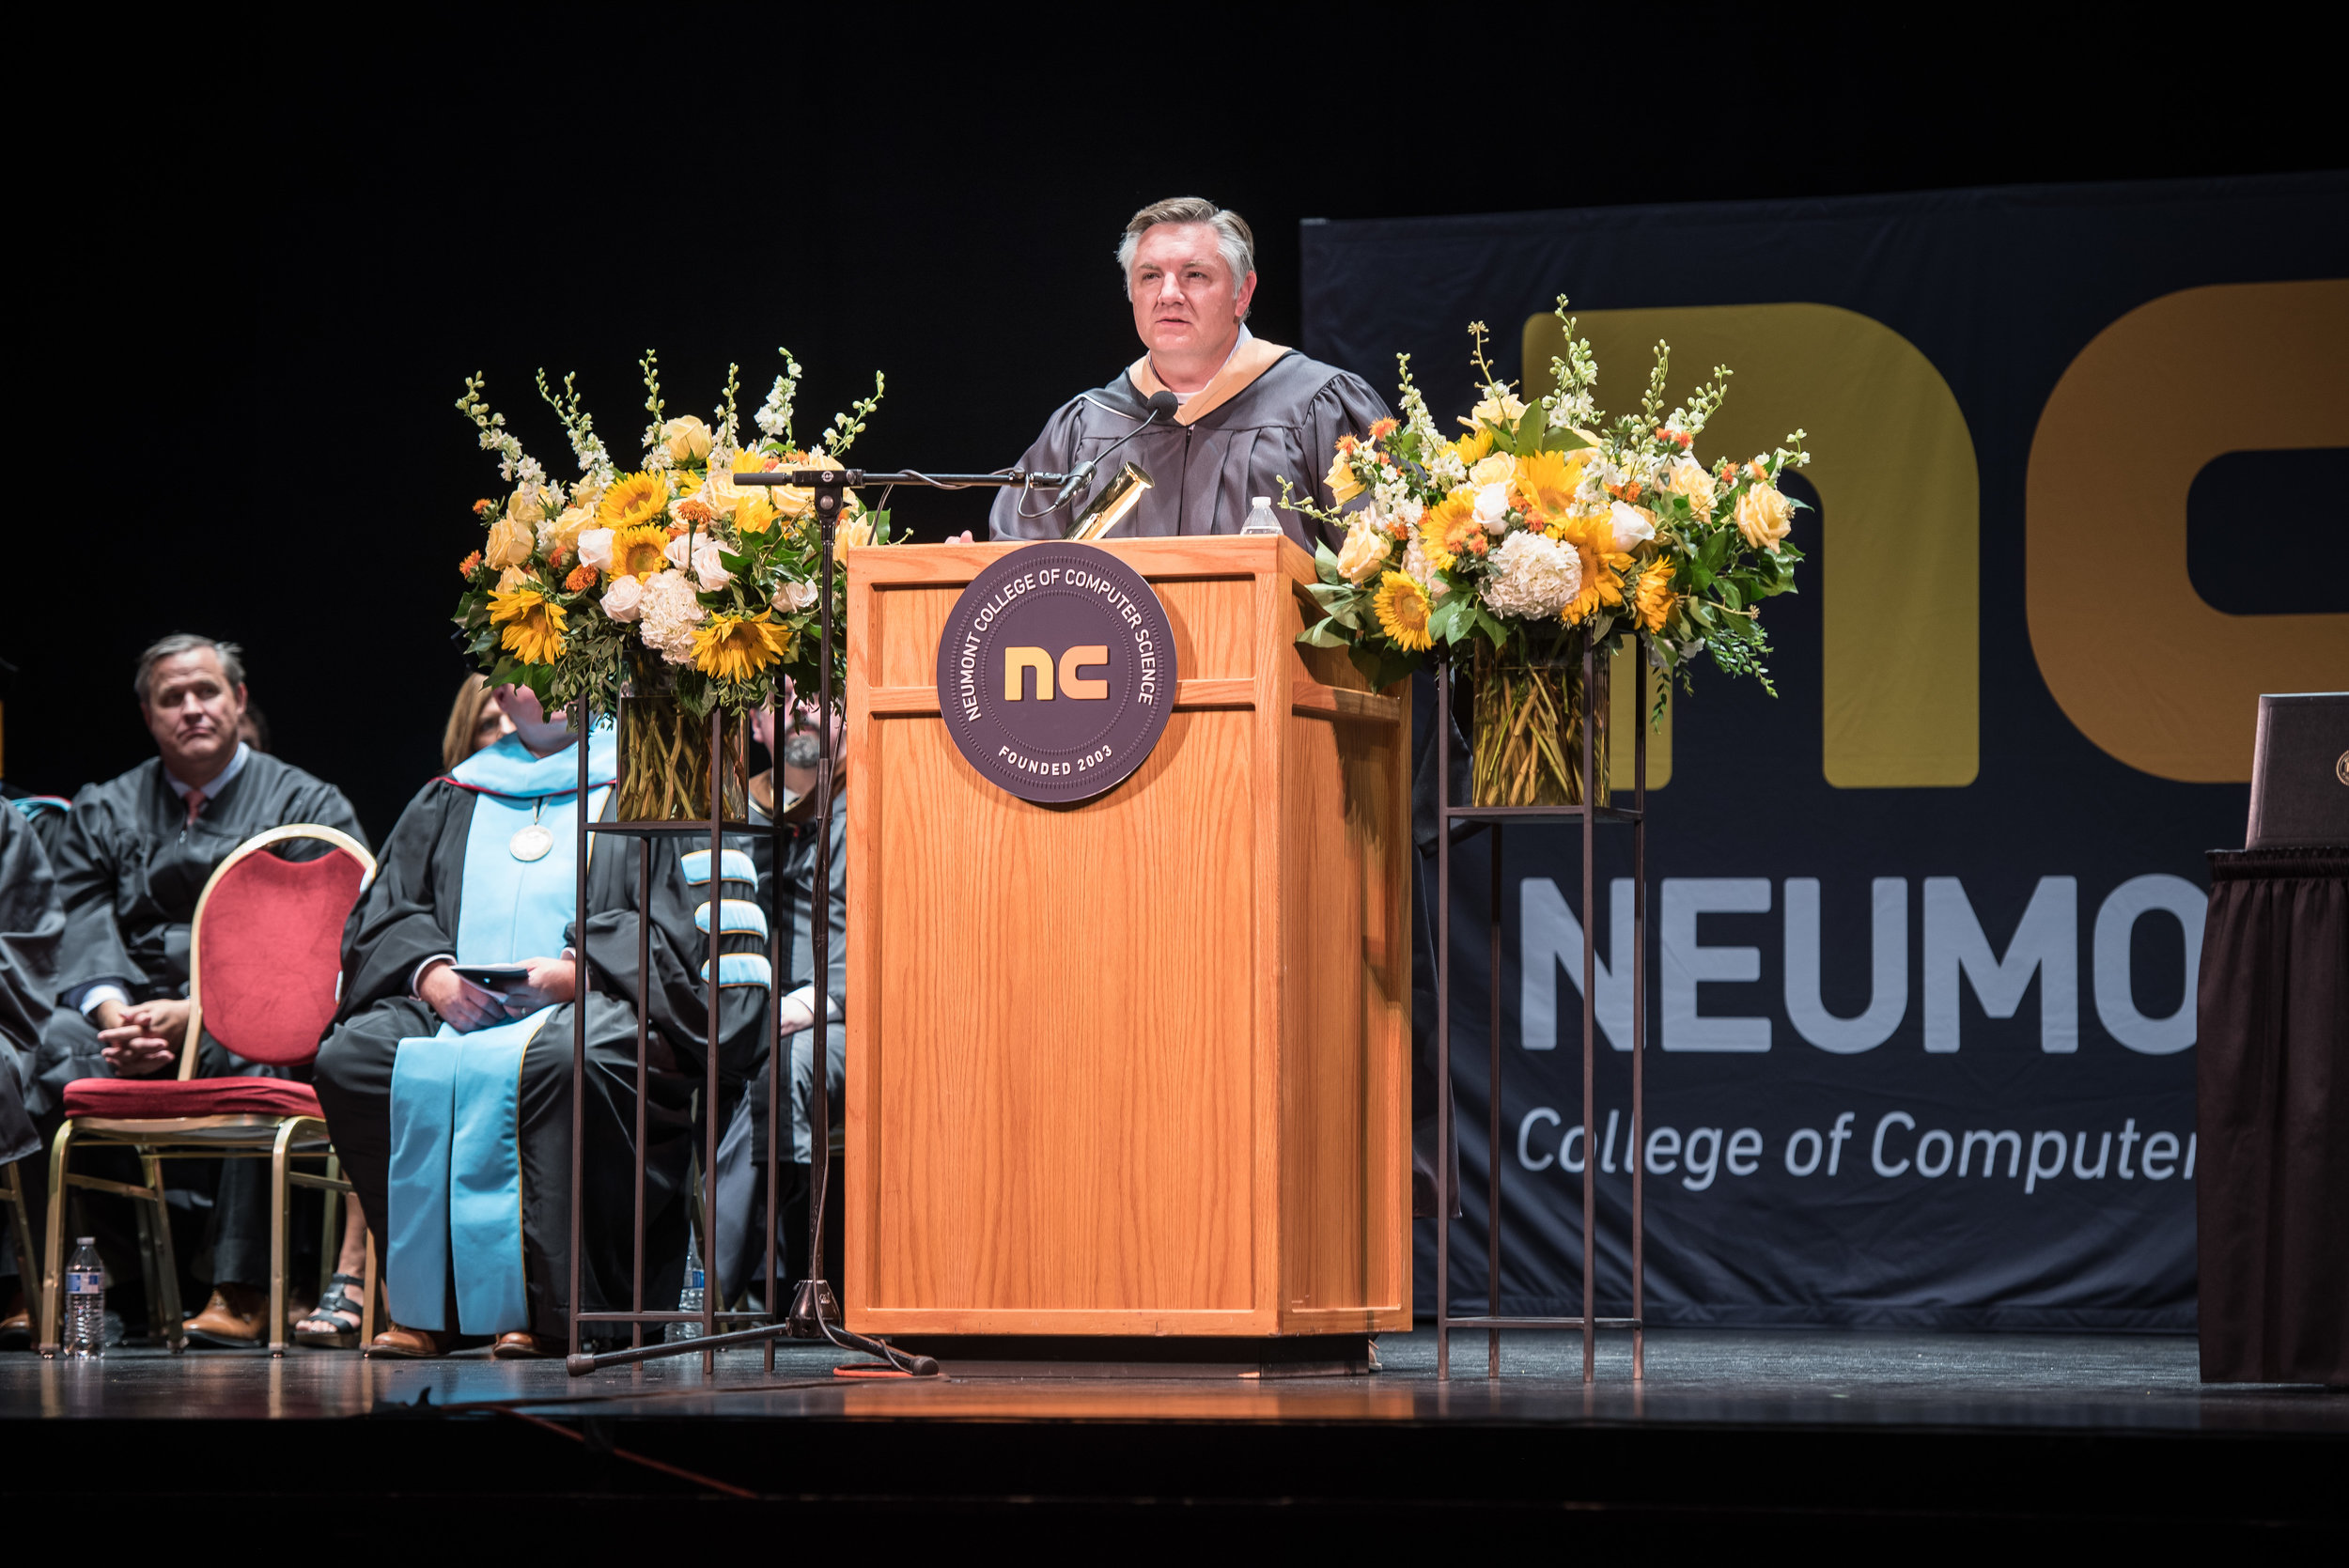 2018 Commencement Ceremony Keynote Speaker John Knotwell, Utah Technology Council president and CEO, reminds graduates that the best way to find success is to help others.